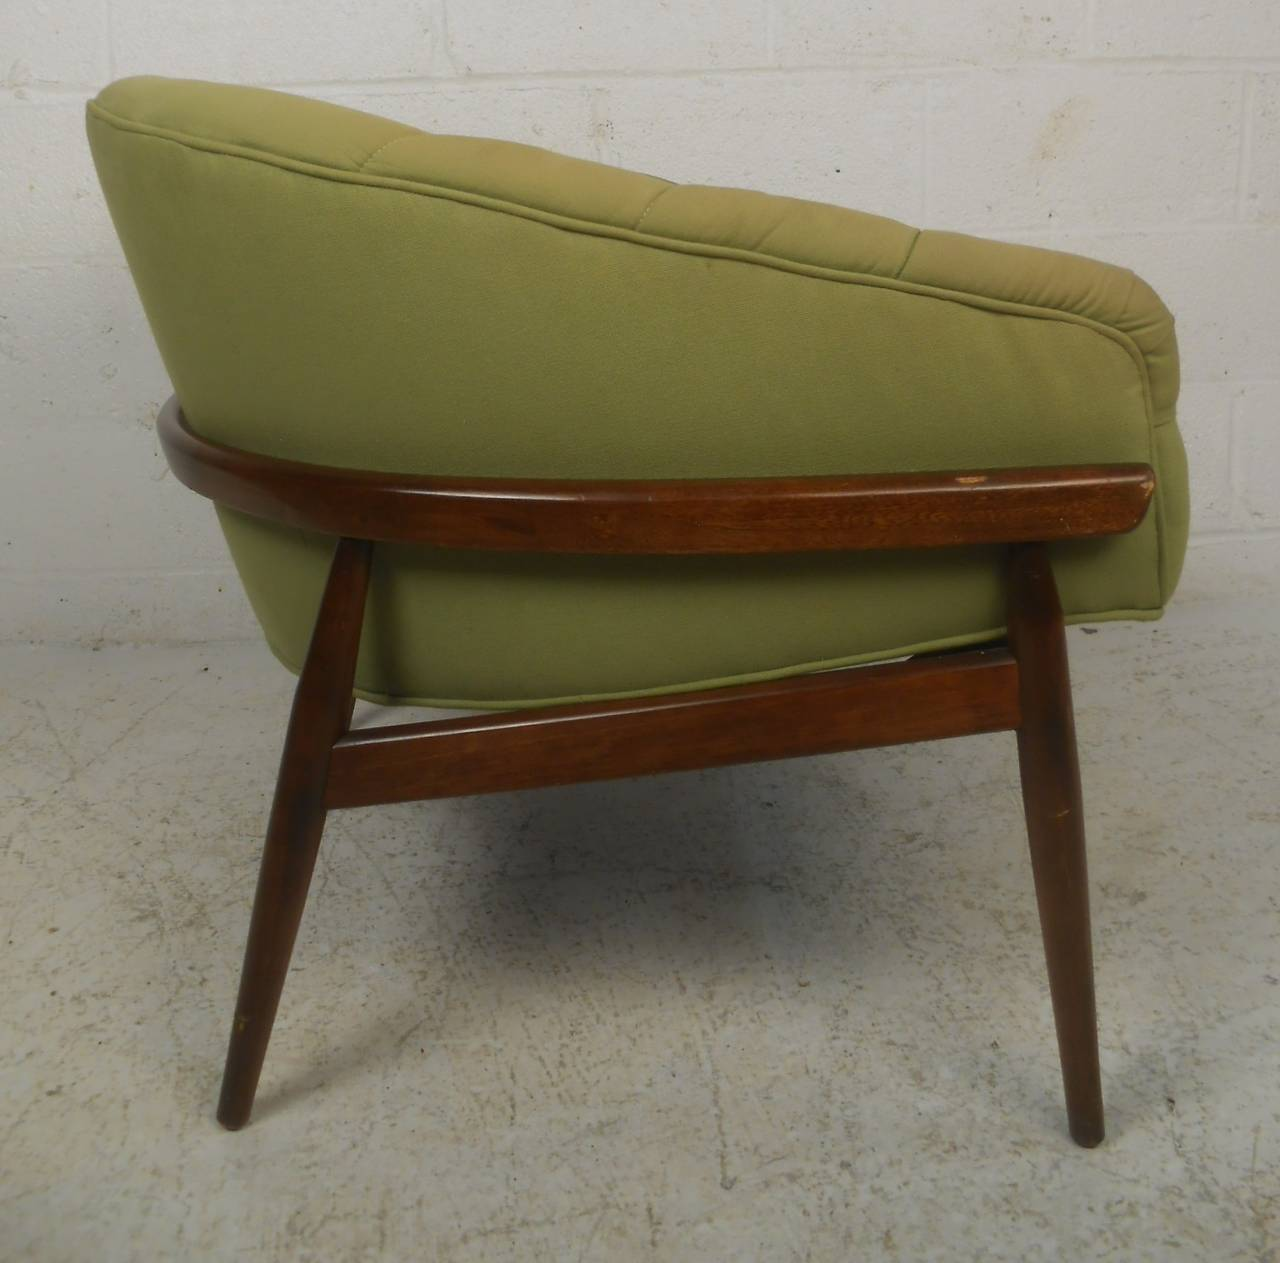 Mid-Century Modern walnut frame lounge chair with barrel back rest and tufted green upholstery. A wide design with overstuffed seating ensuring maximum comfort. Quality craftsmanship that boasts a sculpted dark walnut frame with tapered and splayed